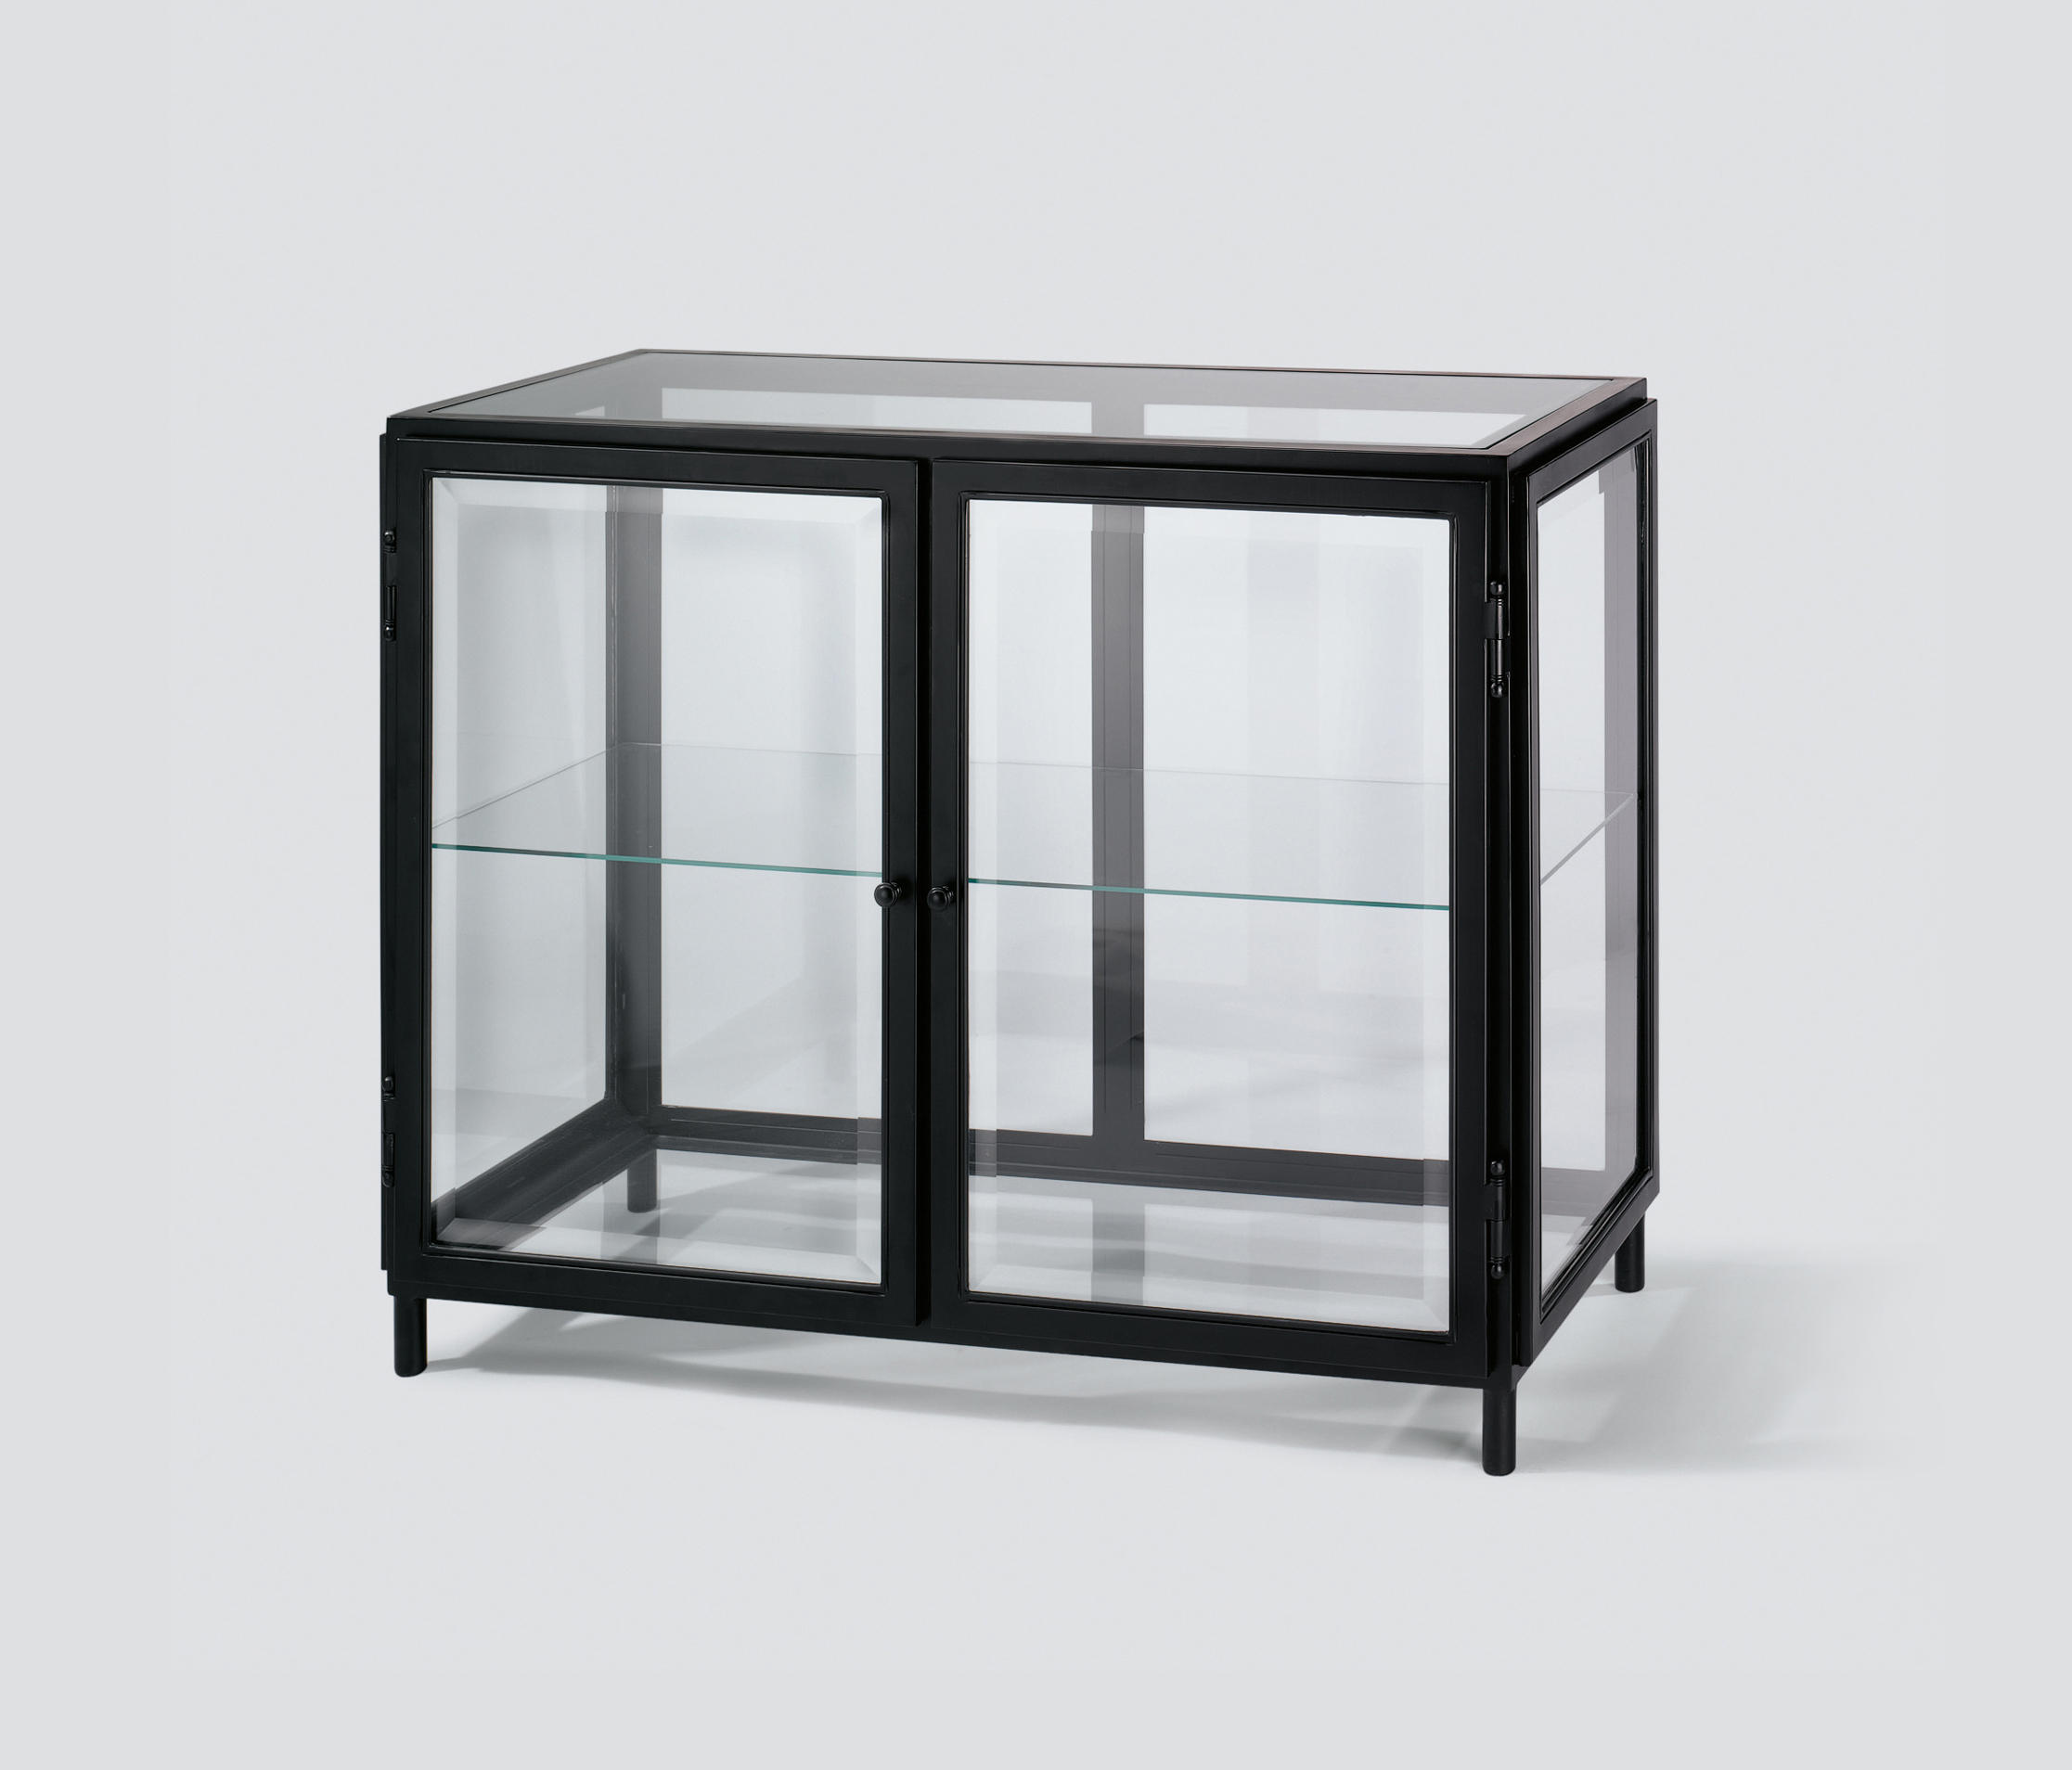 Sideboard Vitrine Barcelona Sideboard Display Cabinets From Lambert Architonic